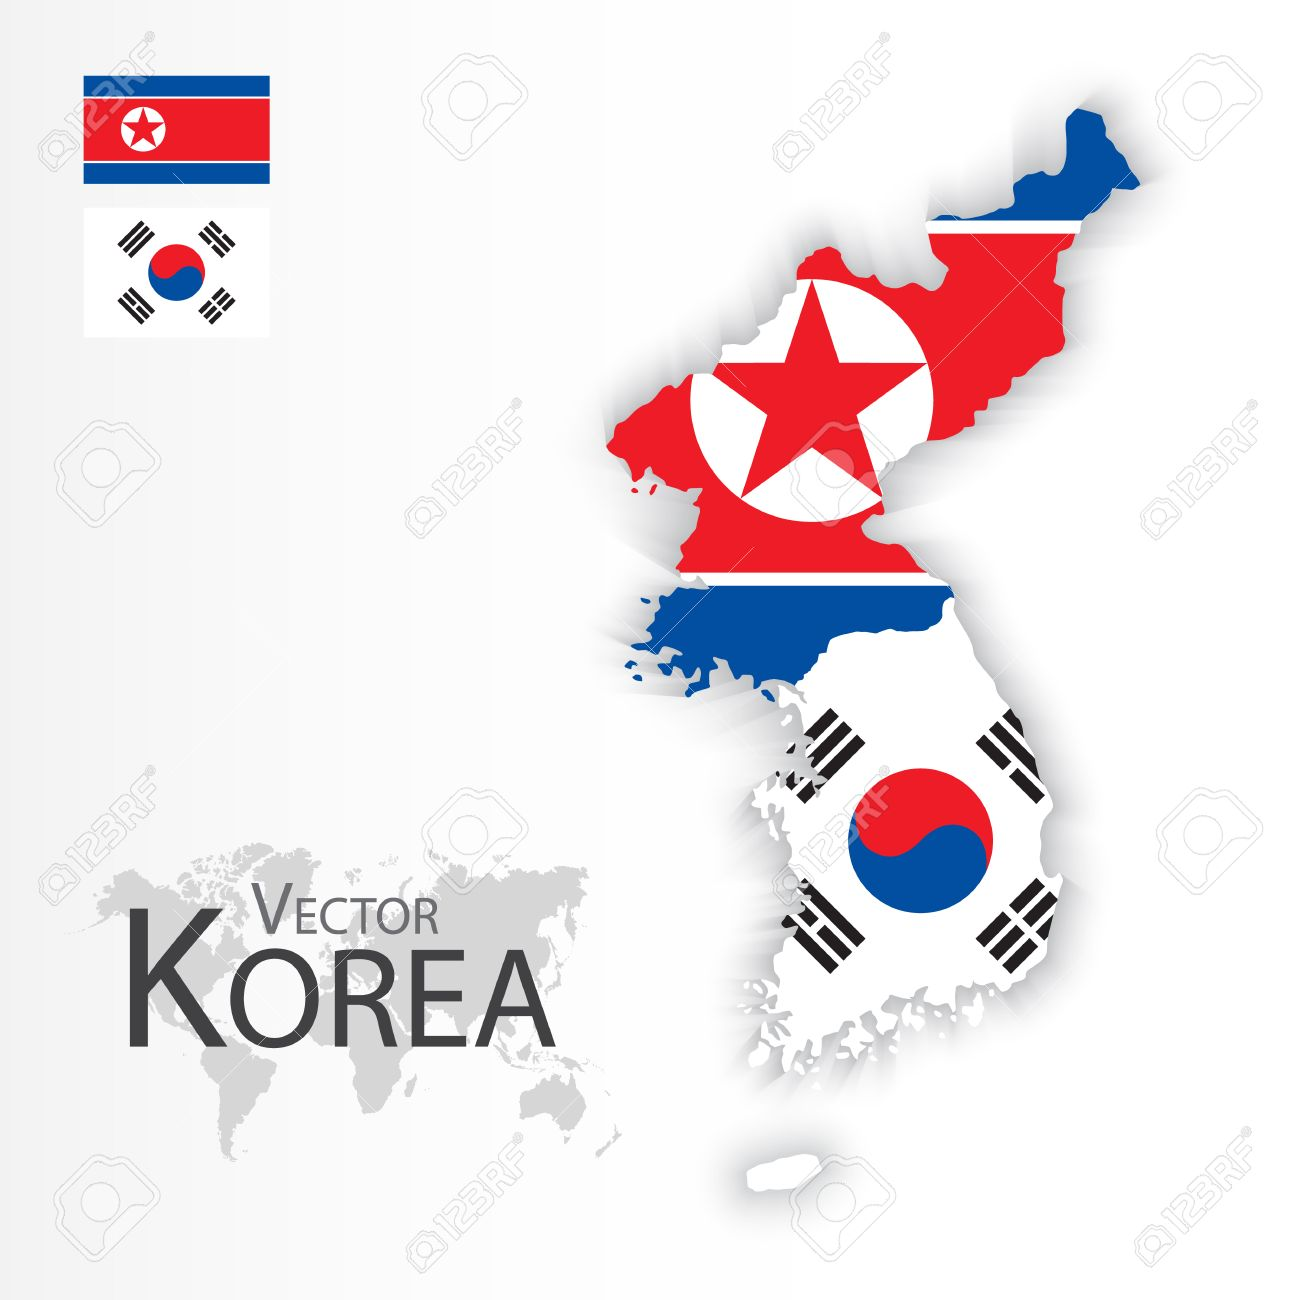 North Korea ( Democratic People 's Republic of Korea ) and South Korea ( Republic of South Korea ) ( flag and map ) ( transportation and tourism concept ) - 52765696